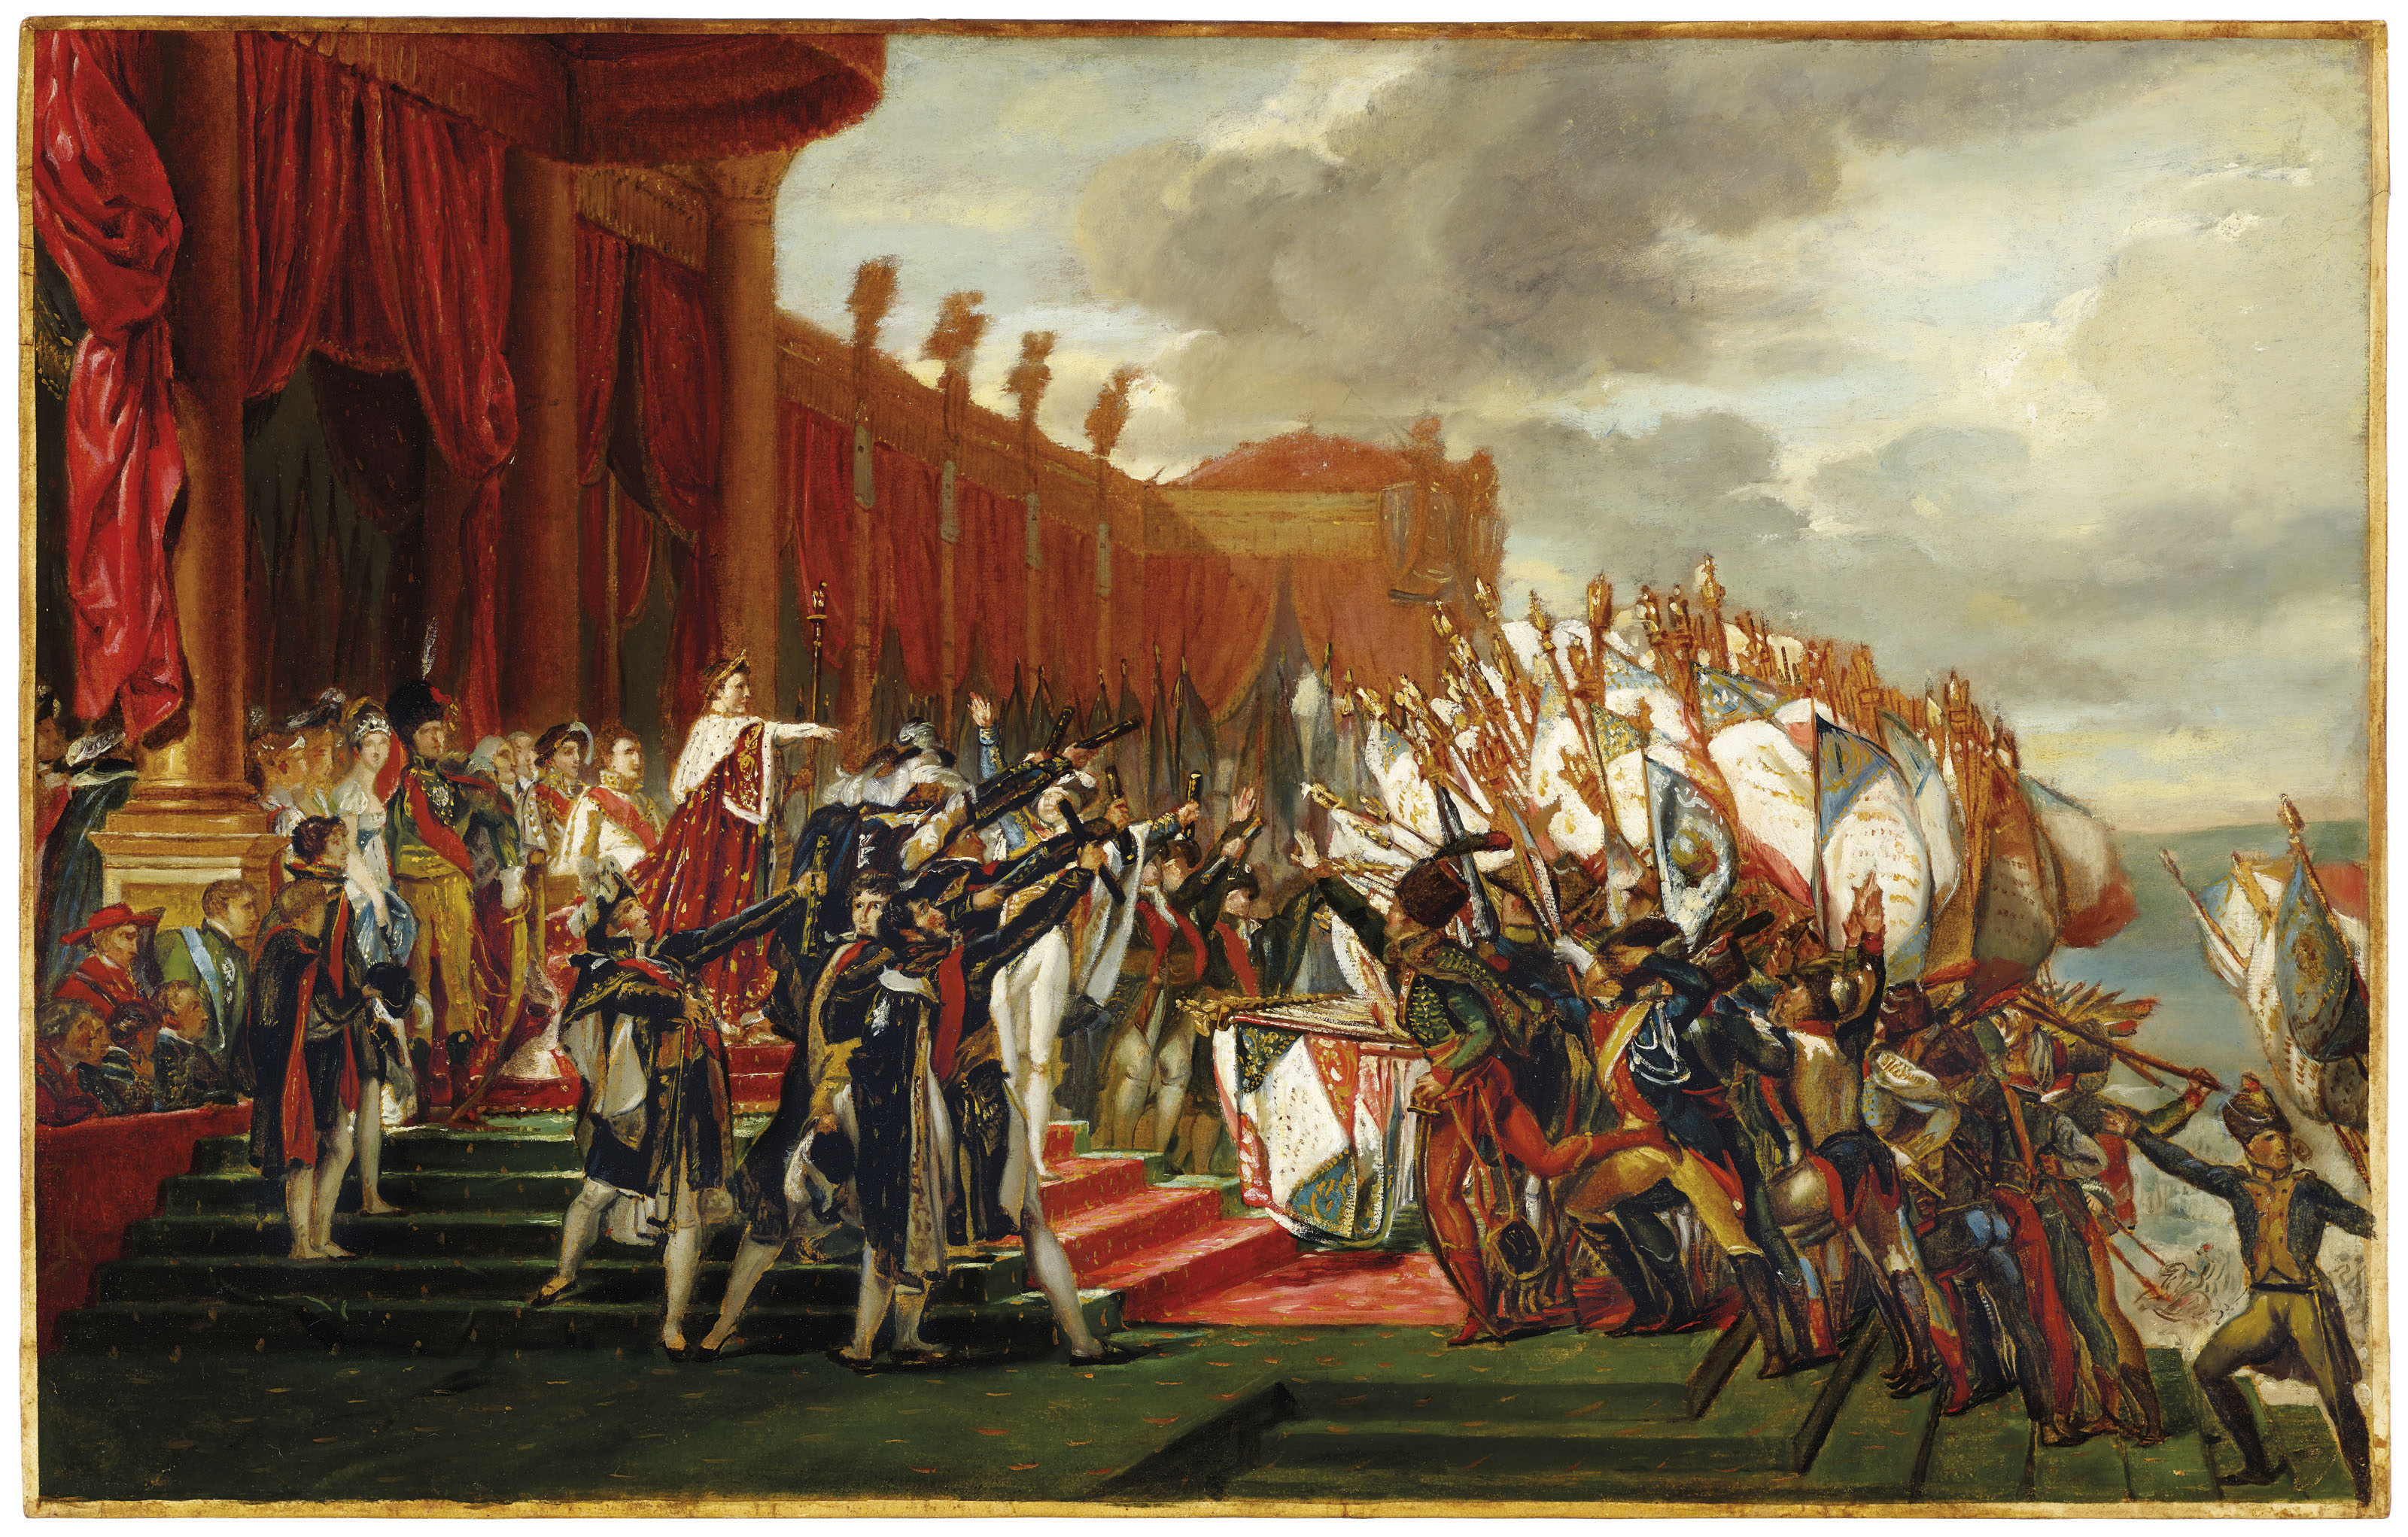 The Distribution of the Eagle Standards, Jacques-Louis David. 1808, oil on paper. Image: Christie's